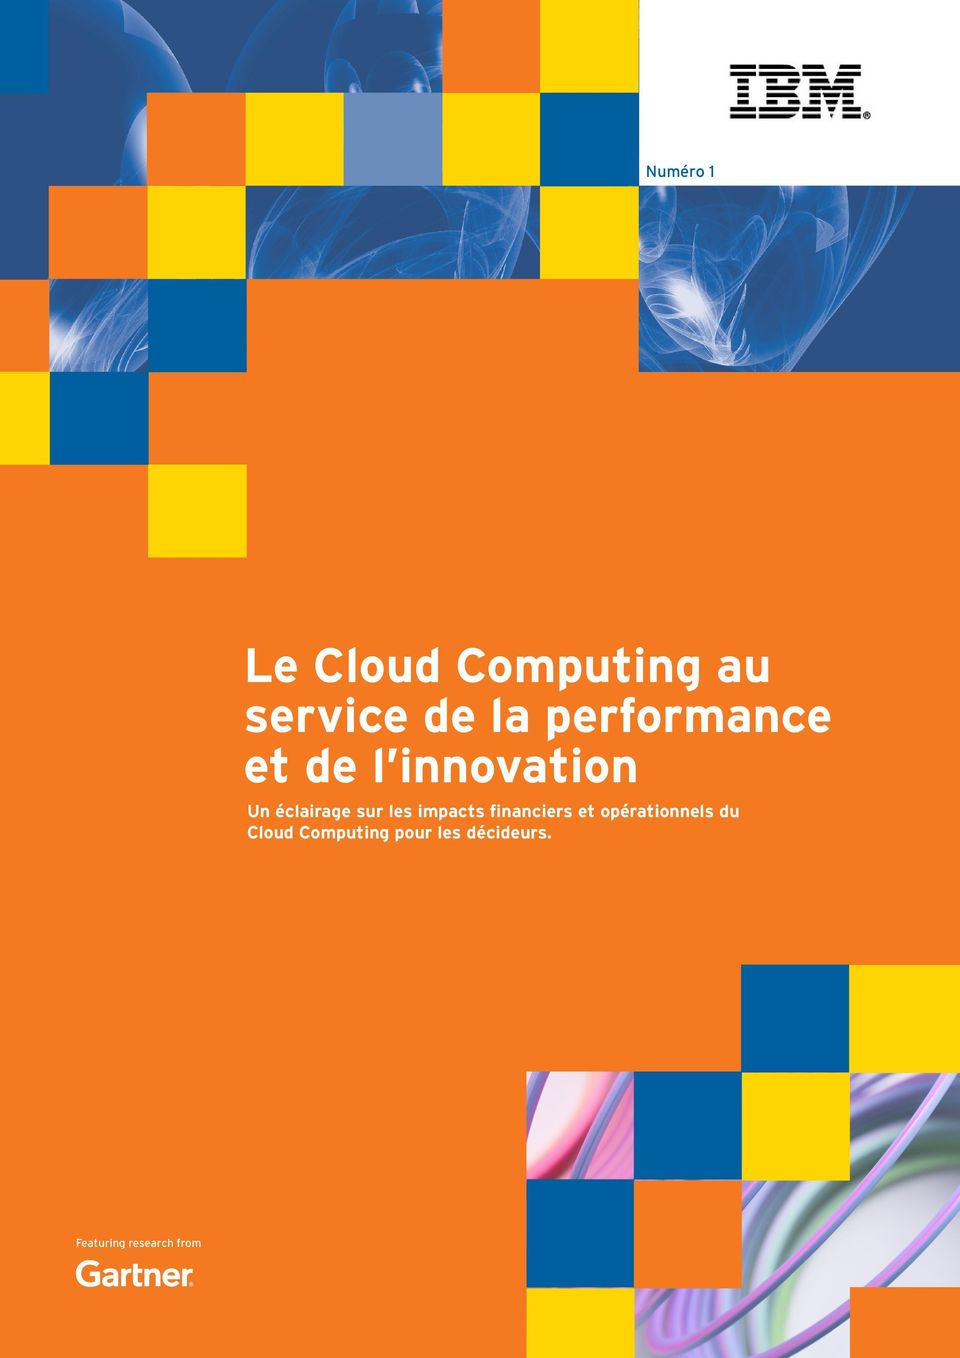 les impacts financiers et opérationnels du Cloud